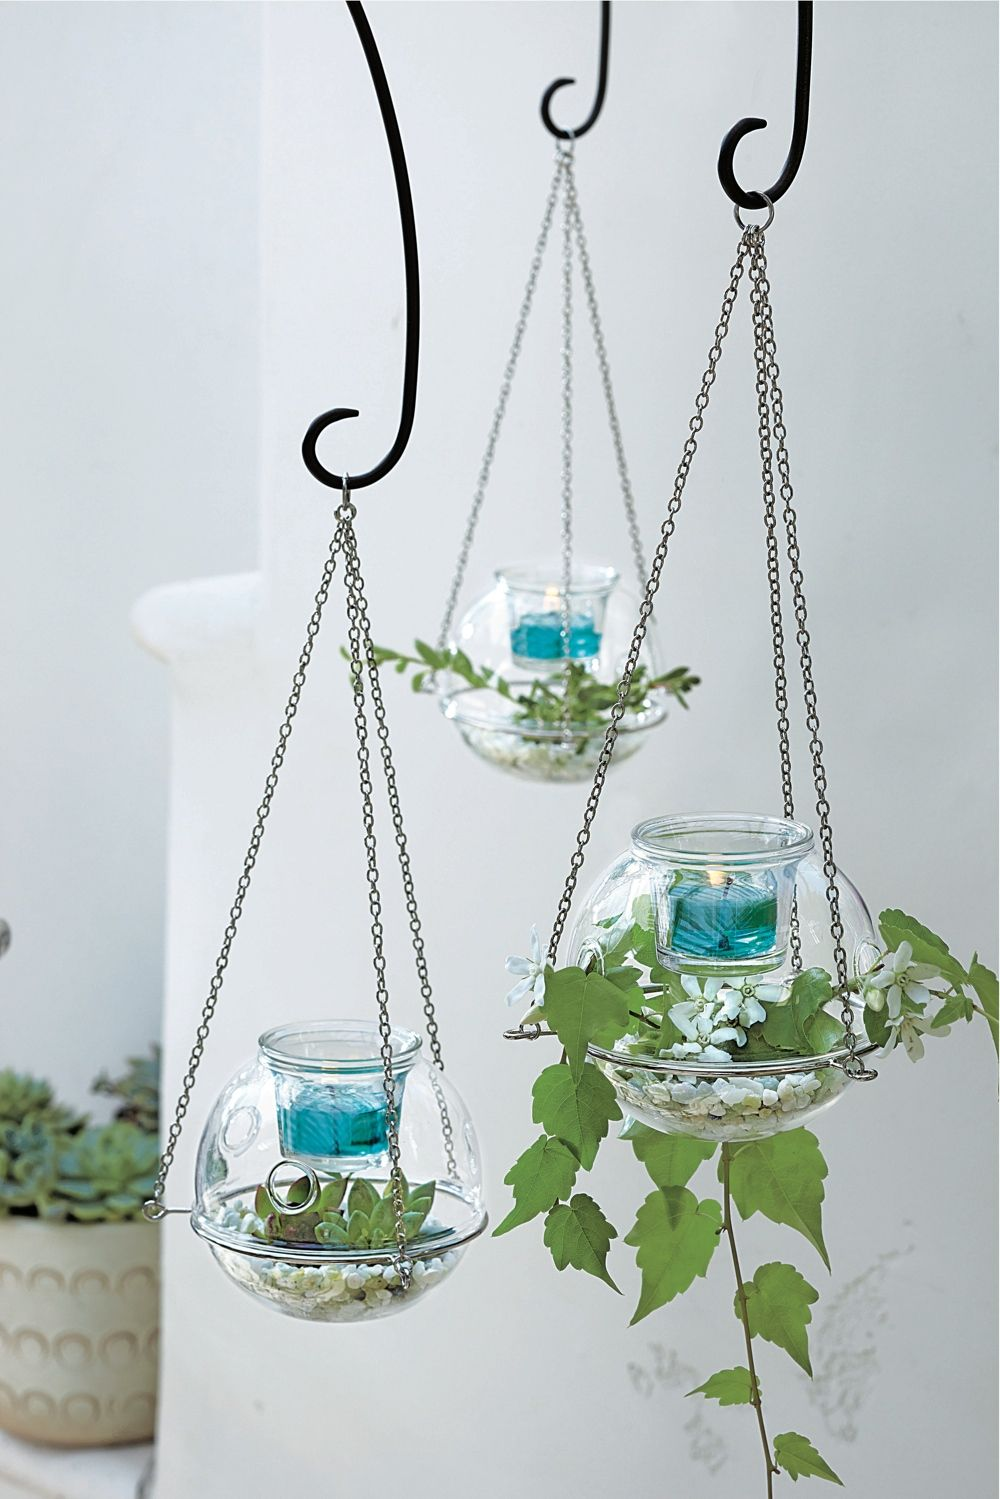 Create your own mini garden in glass with the new Hanging Terrarium Votive Holder!  www.partylite.biz/warmthesoulwkim